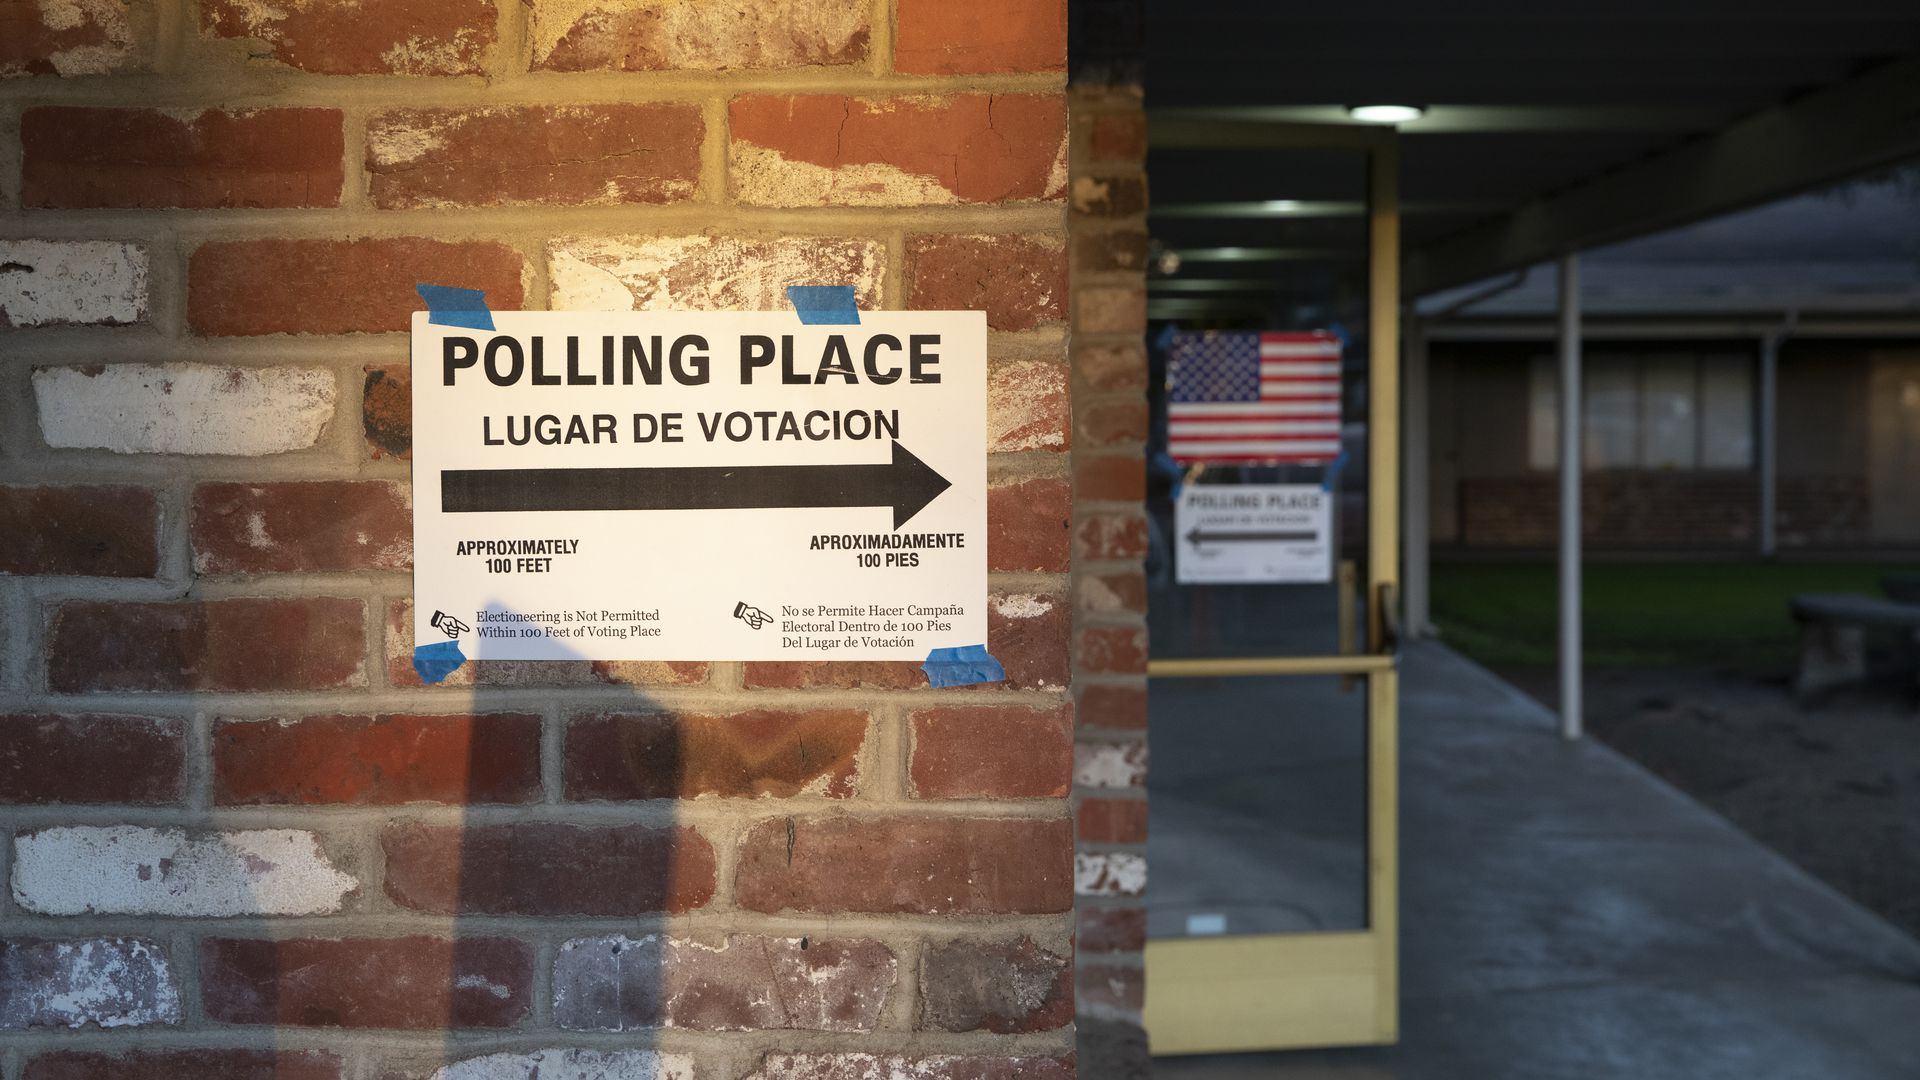 A sigh for a polling place on a brick wall